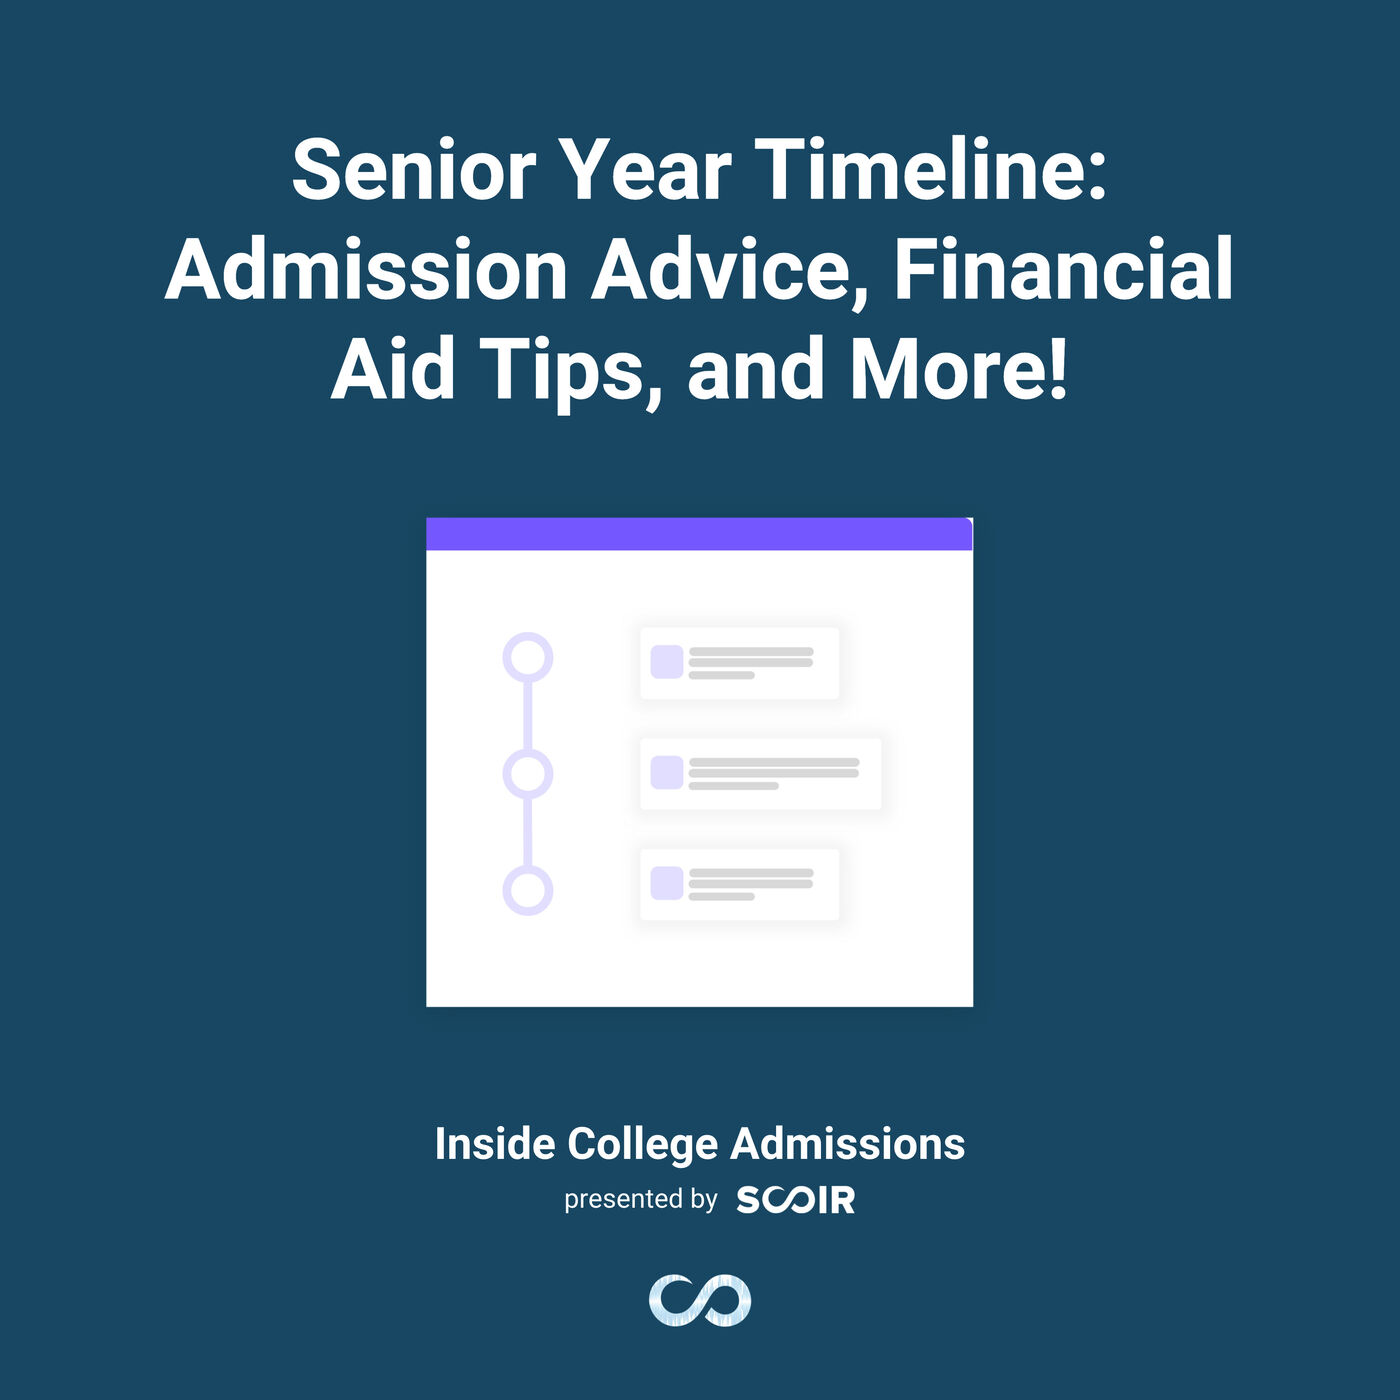 Senior Year Timeline: Admission Advice, Financial Aid Tips, and More!